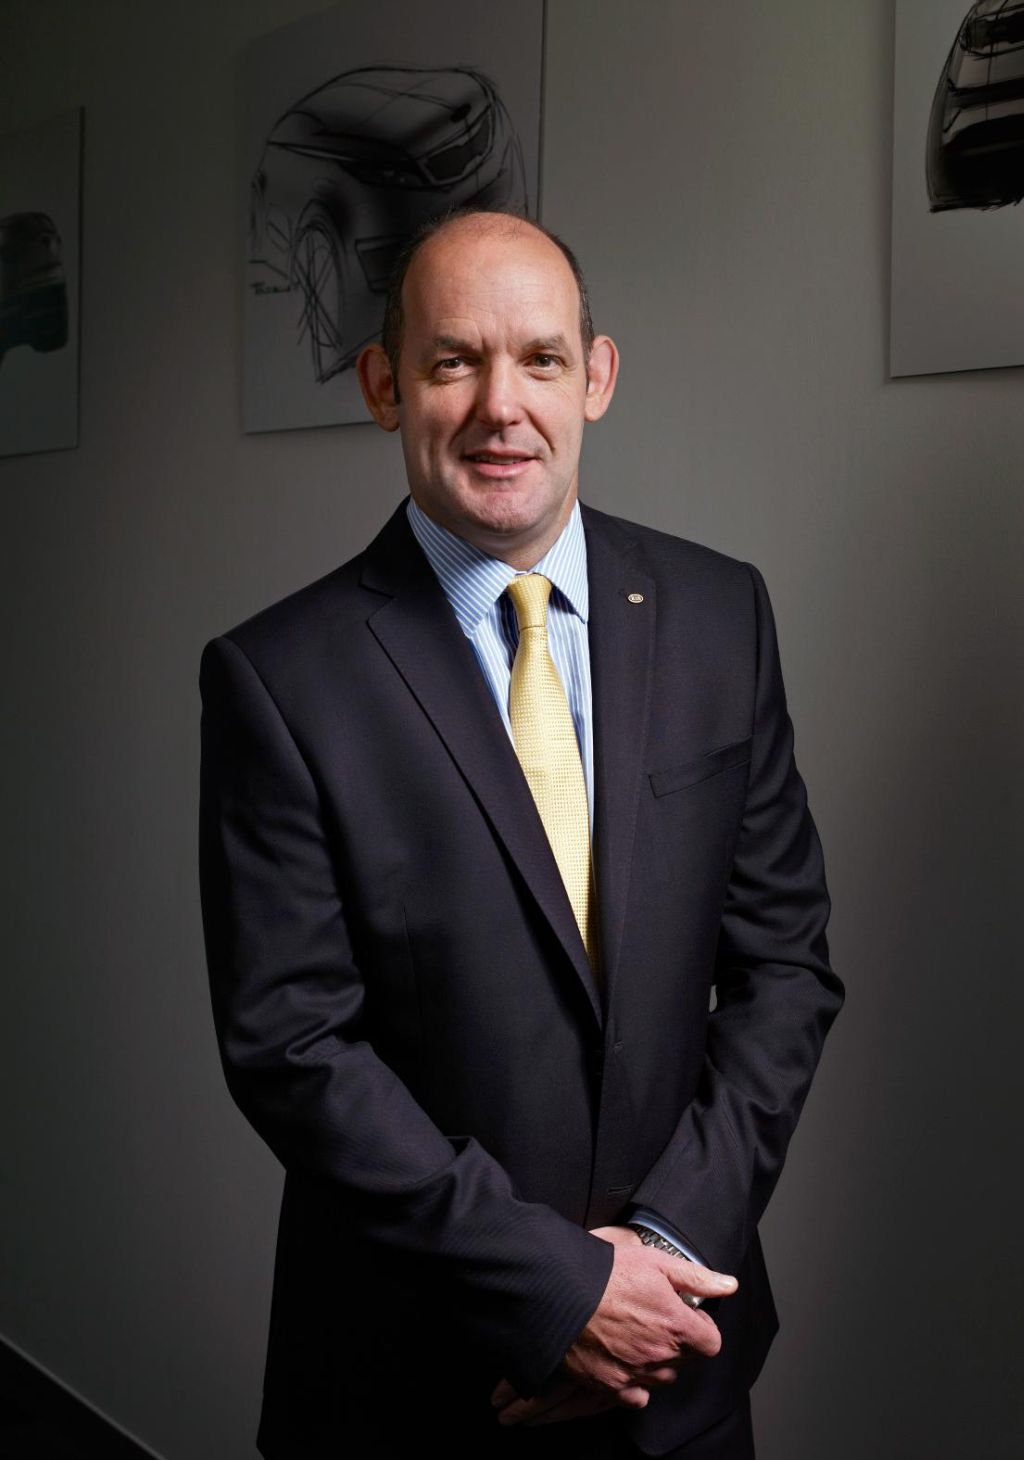 Michael cole appointed as chief operating officer at kia Micheal motors